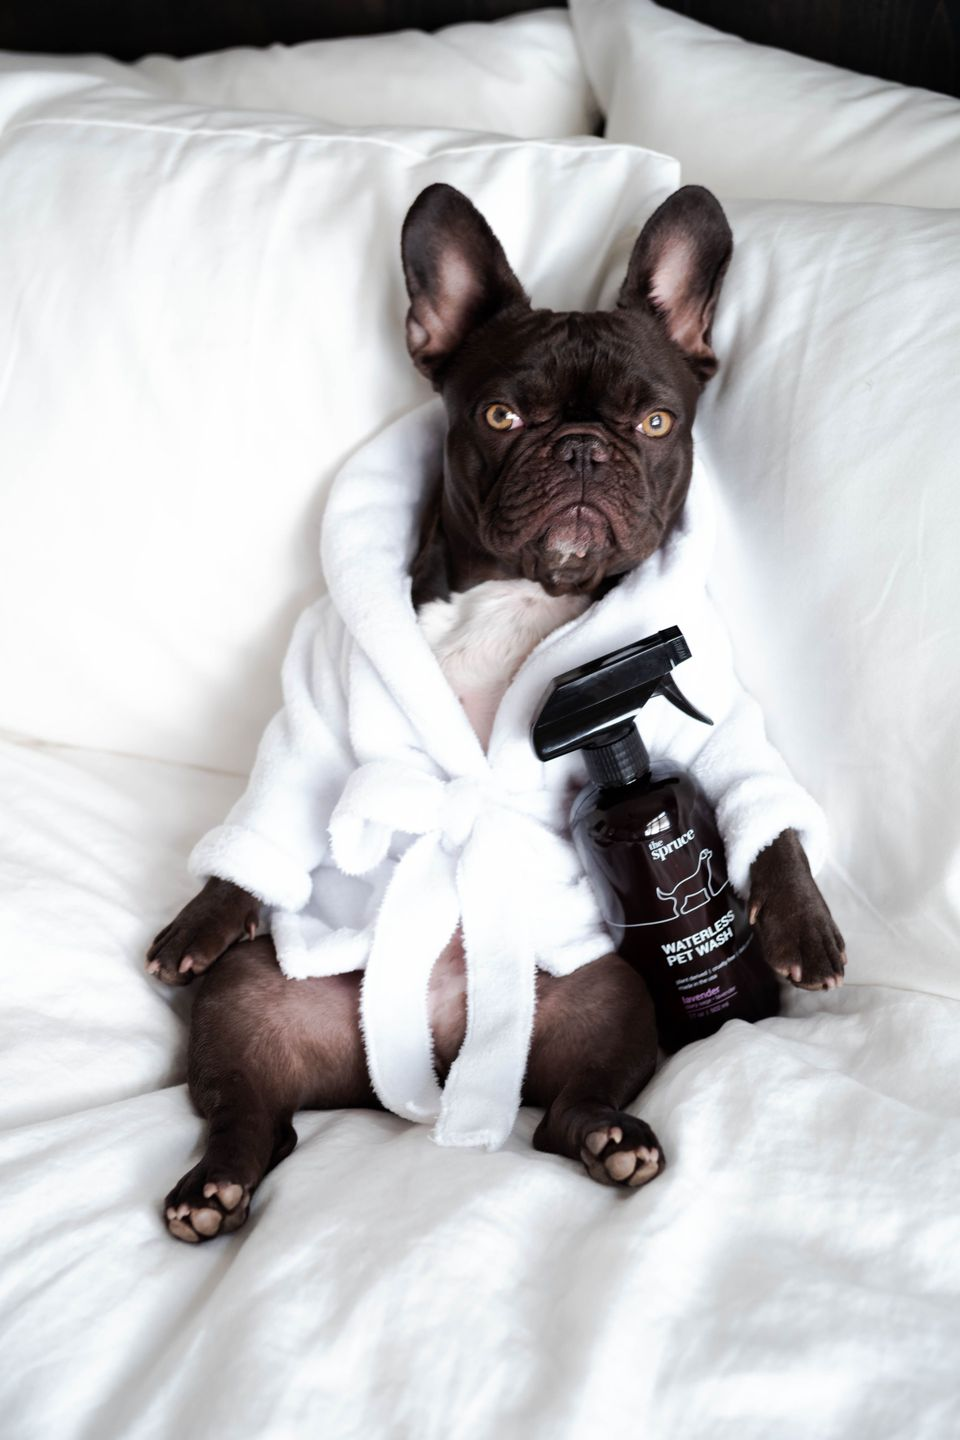 French bulldog in a bathrobe with Waterless Pet Wash